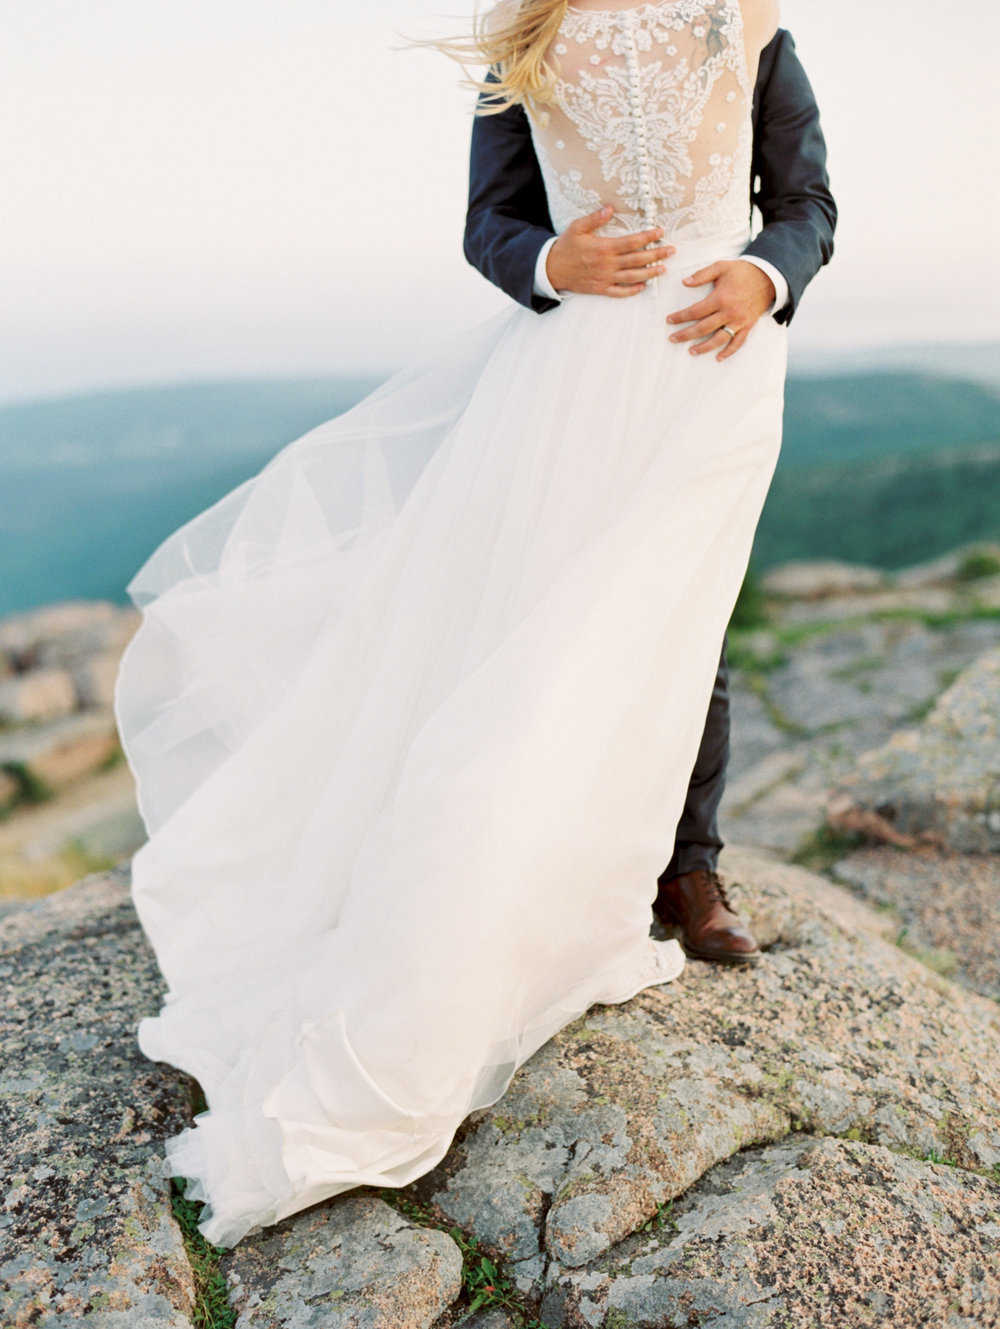 Fine_Art_Film_Wedding_Photographer_Bar_Harbor_Maine_Cadillac_Mountain_Jordan_Pond_Kati_Rosado_Photography-44.jpg